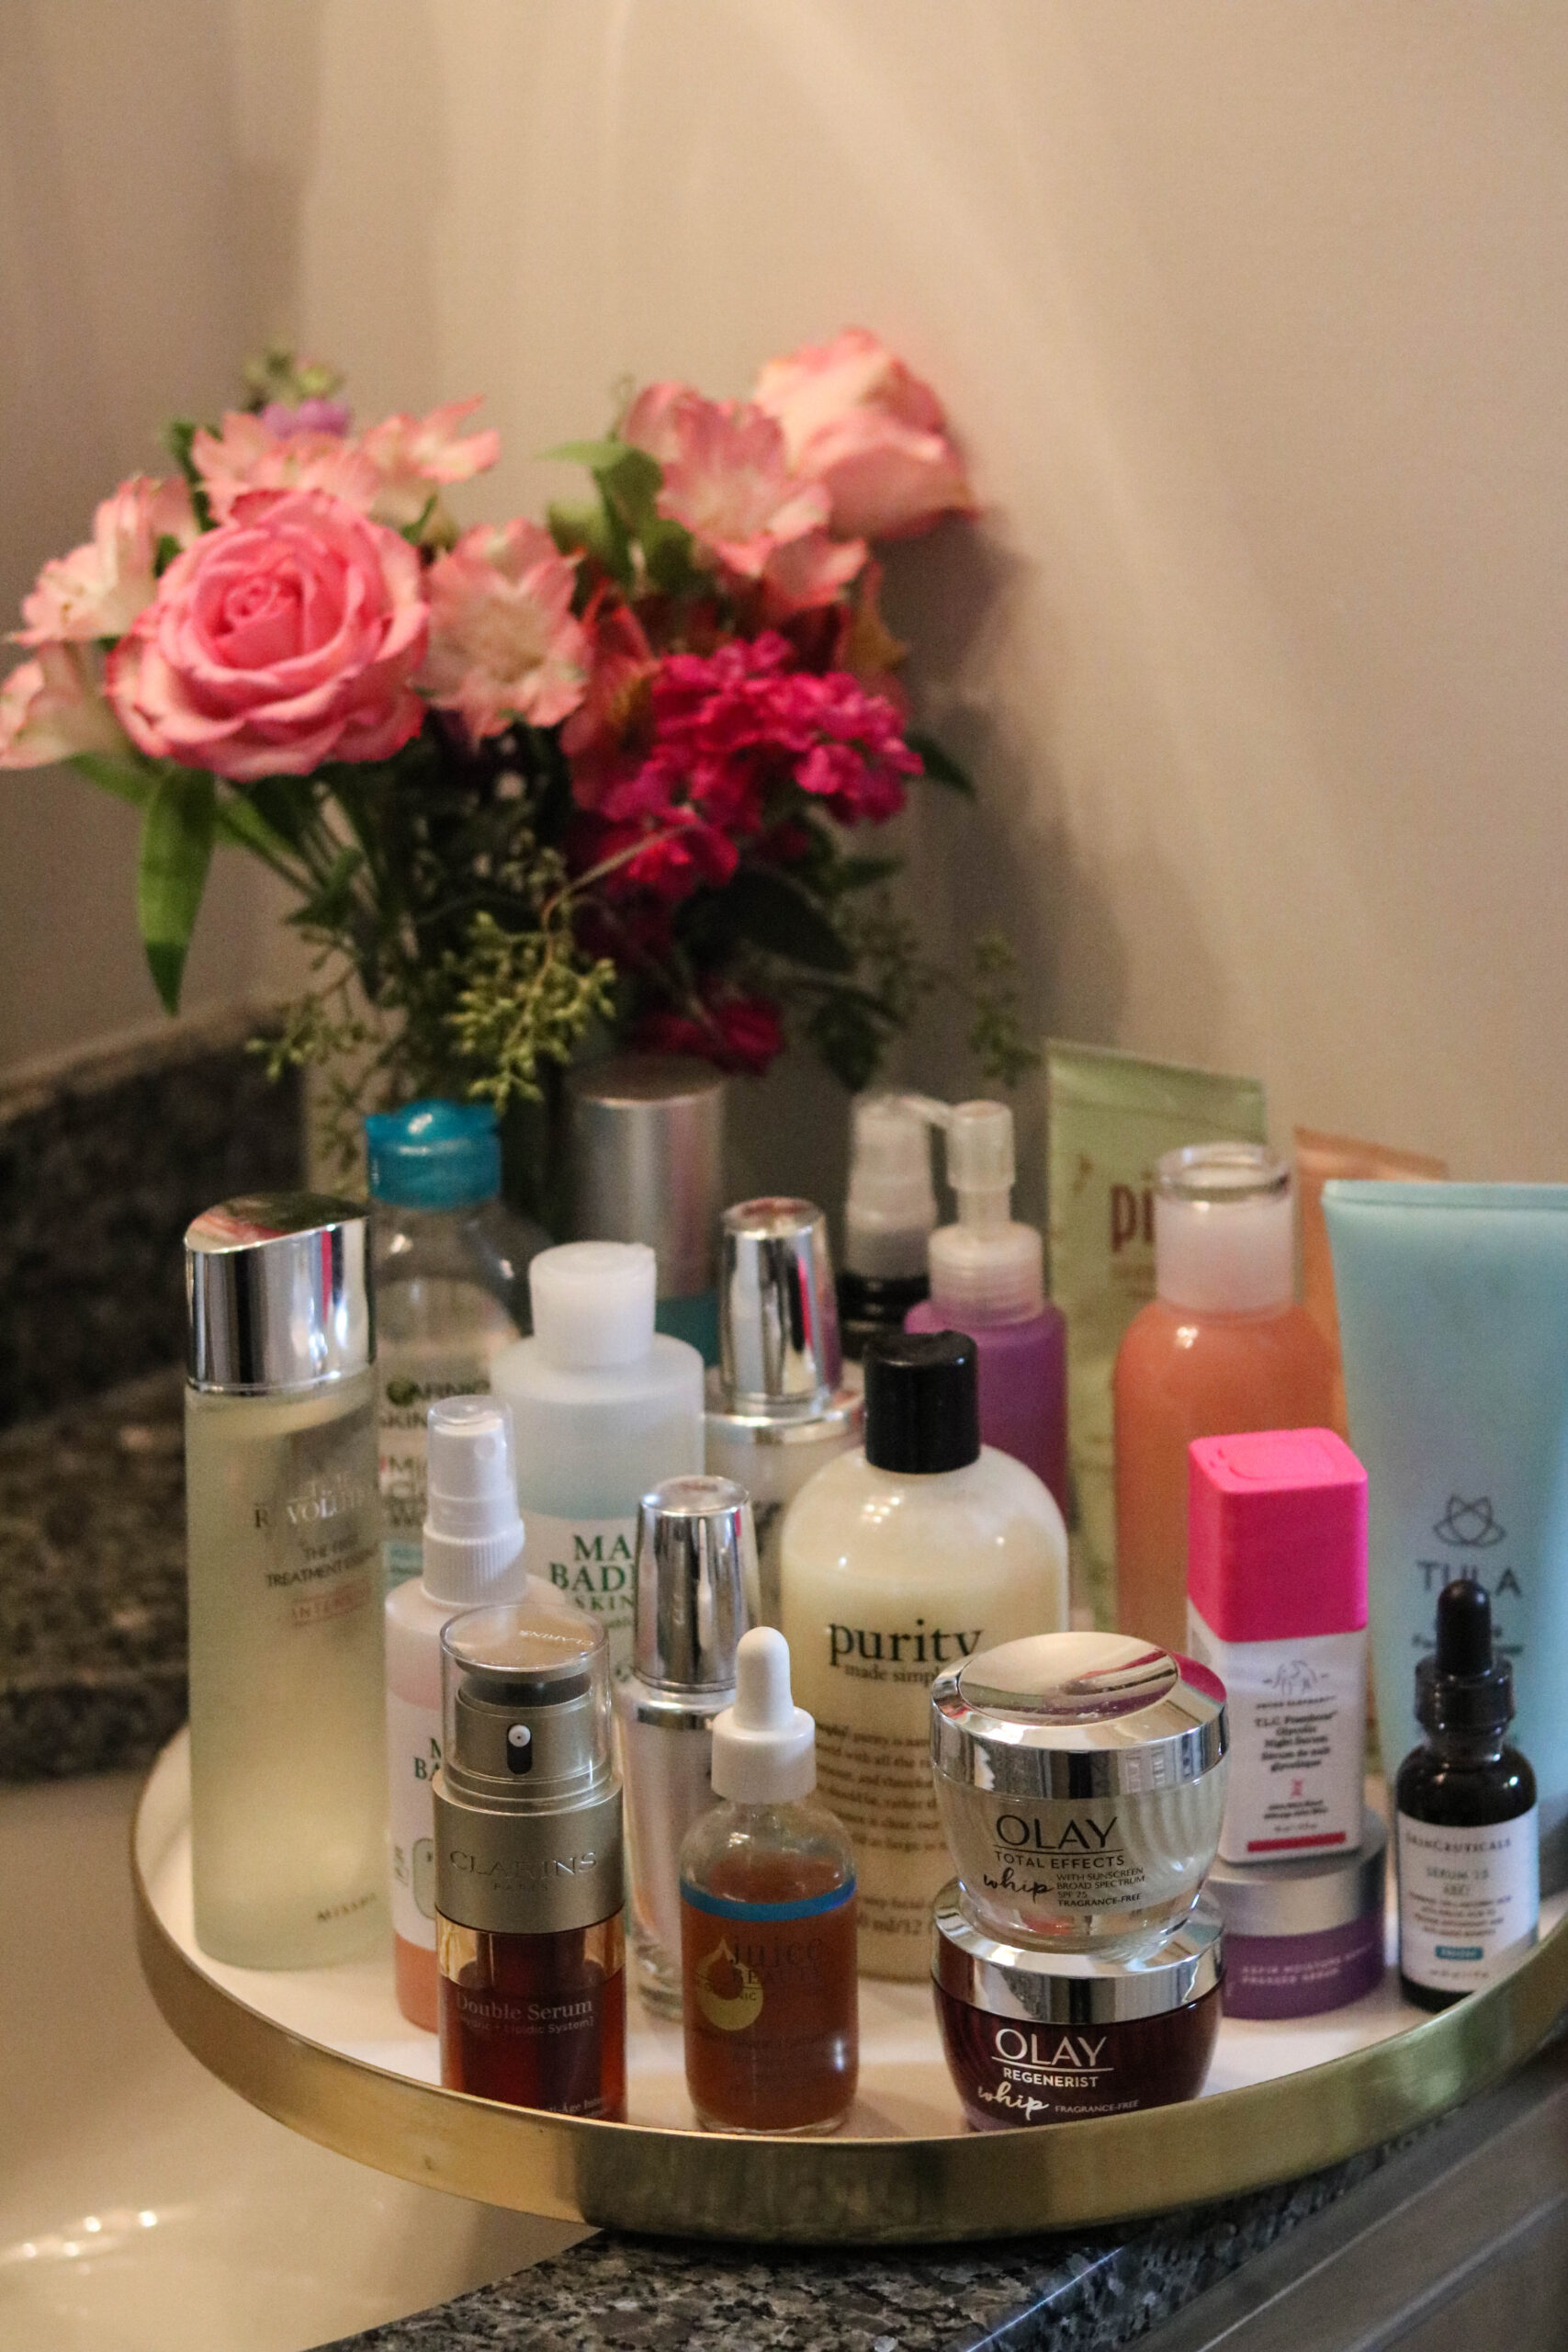 Here's the *actually* correct order to apply your skincare products :